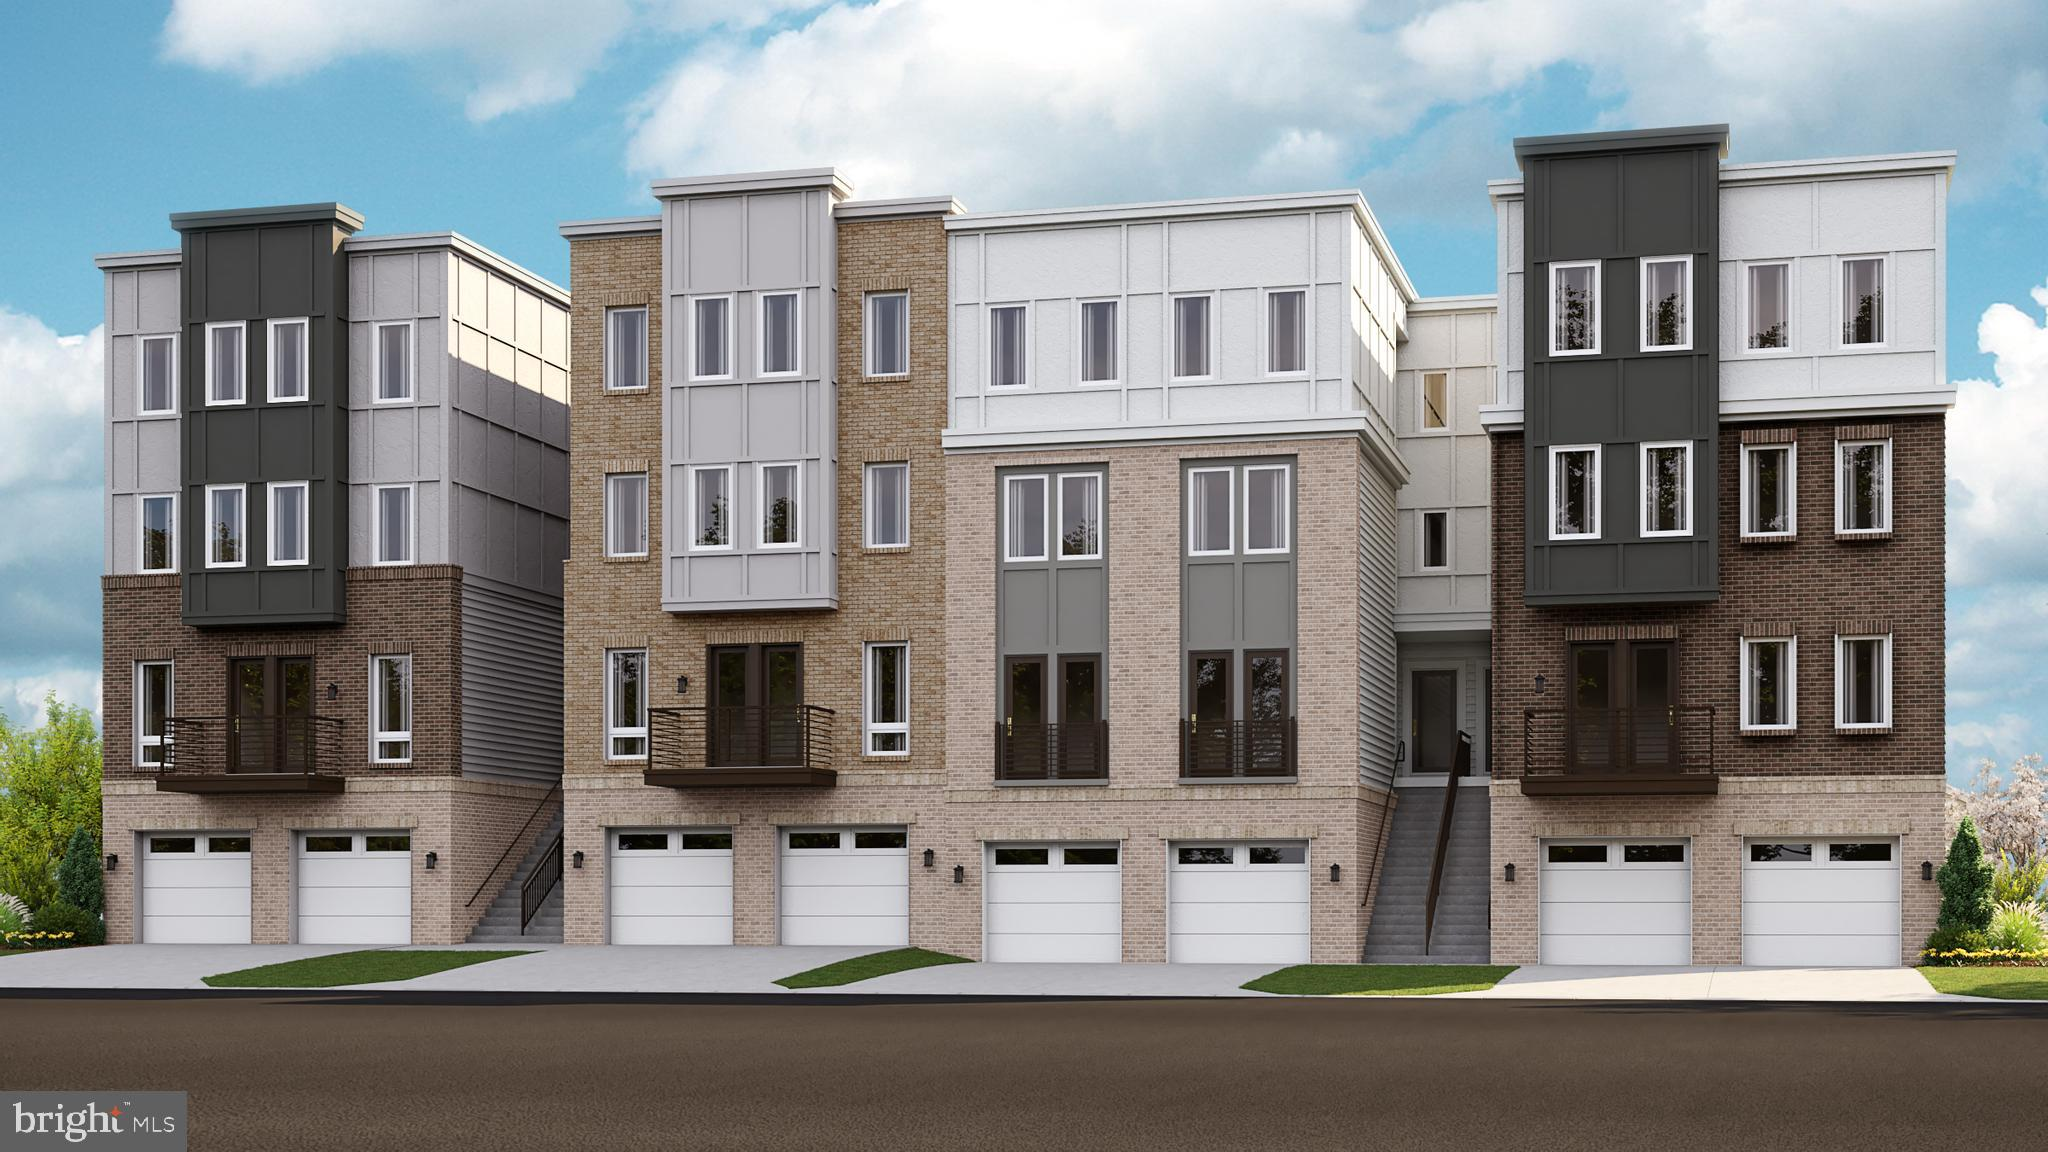 FOR A LIMITED TIME, $15,000 CLOSING COST ASSISTANCE WITH USE OF LENNAR MORTGAGE & TITLE! SEE 3D PHOT